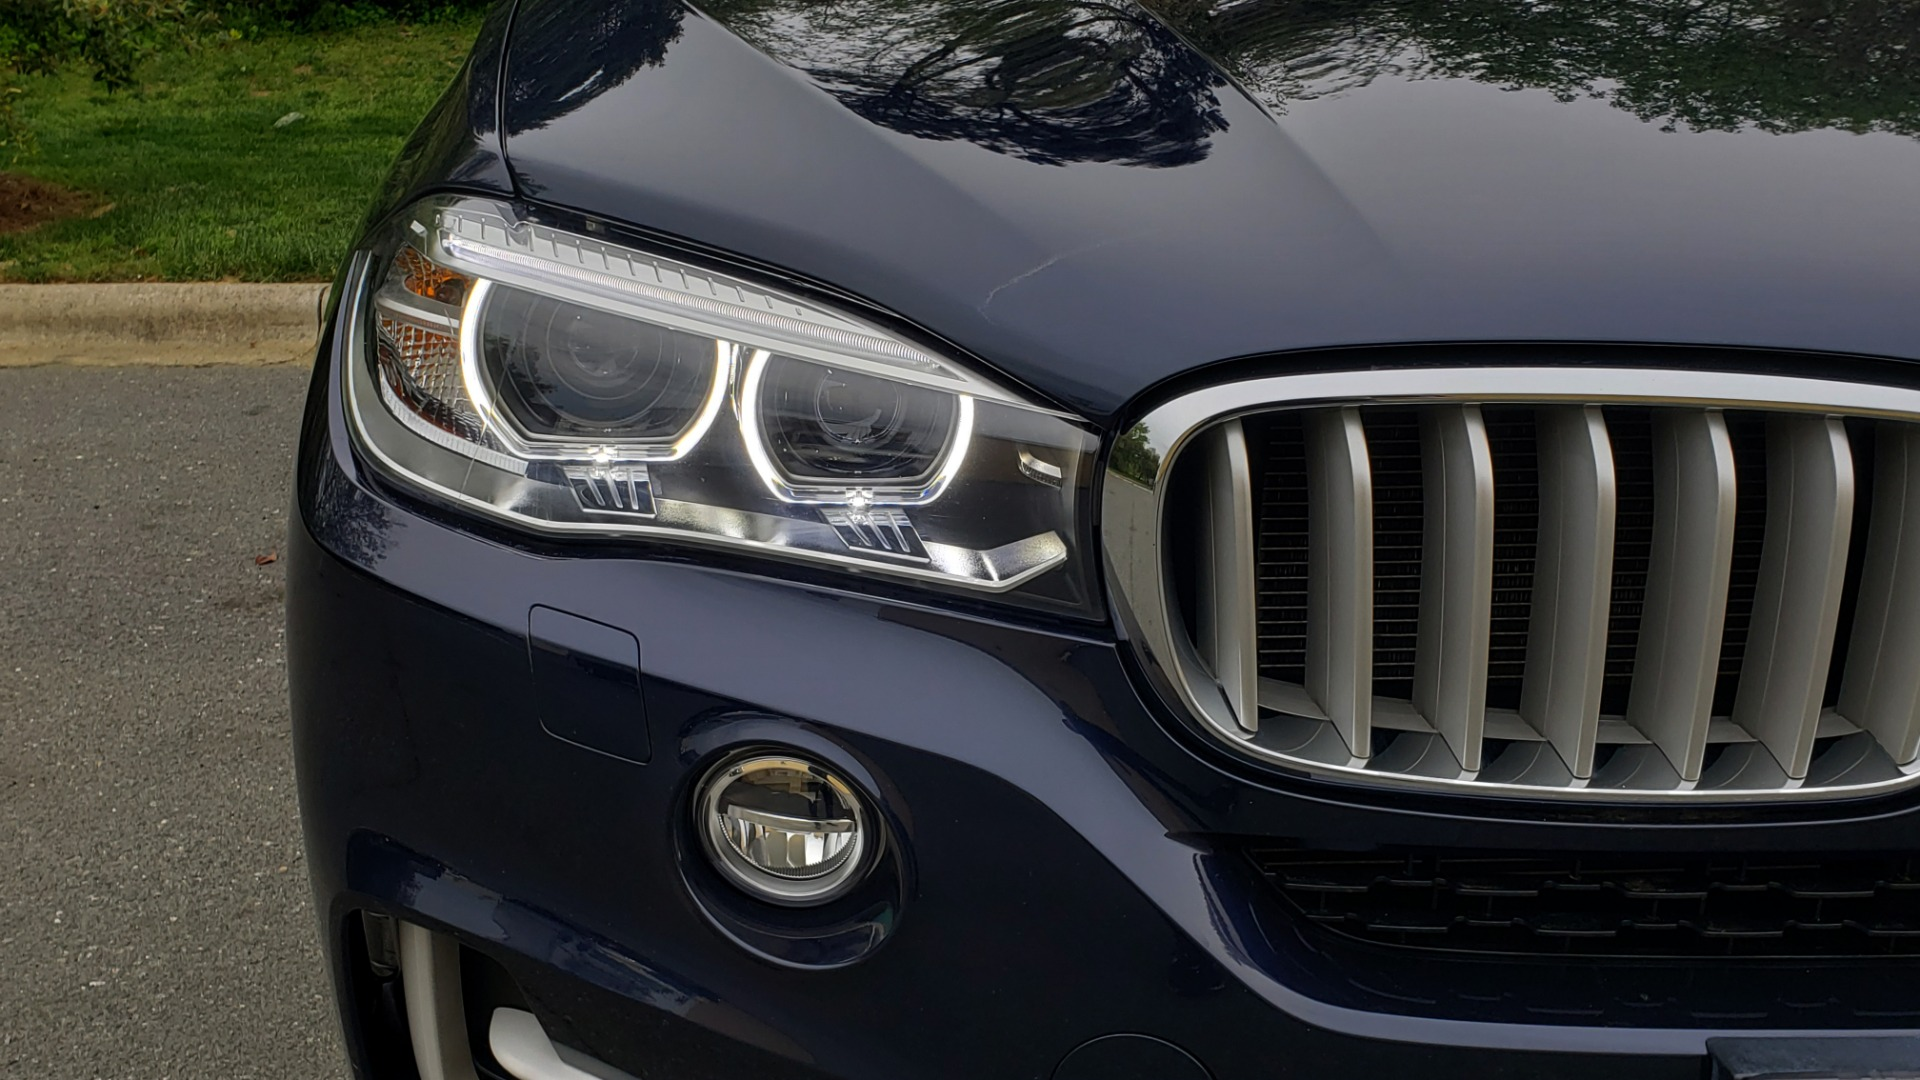 Used 2017 BMW X5 XDRIVE35I PREMIUM / NAV / SUNROOF/ CLD WTHR / HARMAN/KARDON / REARVIEW for sale $30,595 at Formula Imports in Charlotte NC 28227 21